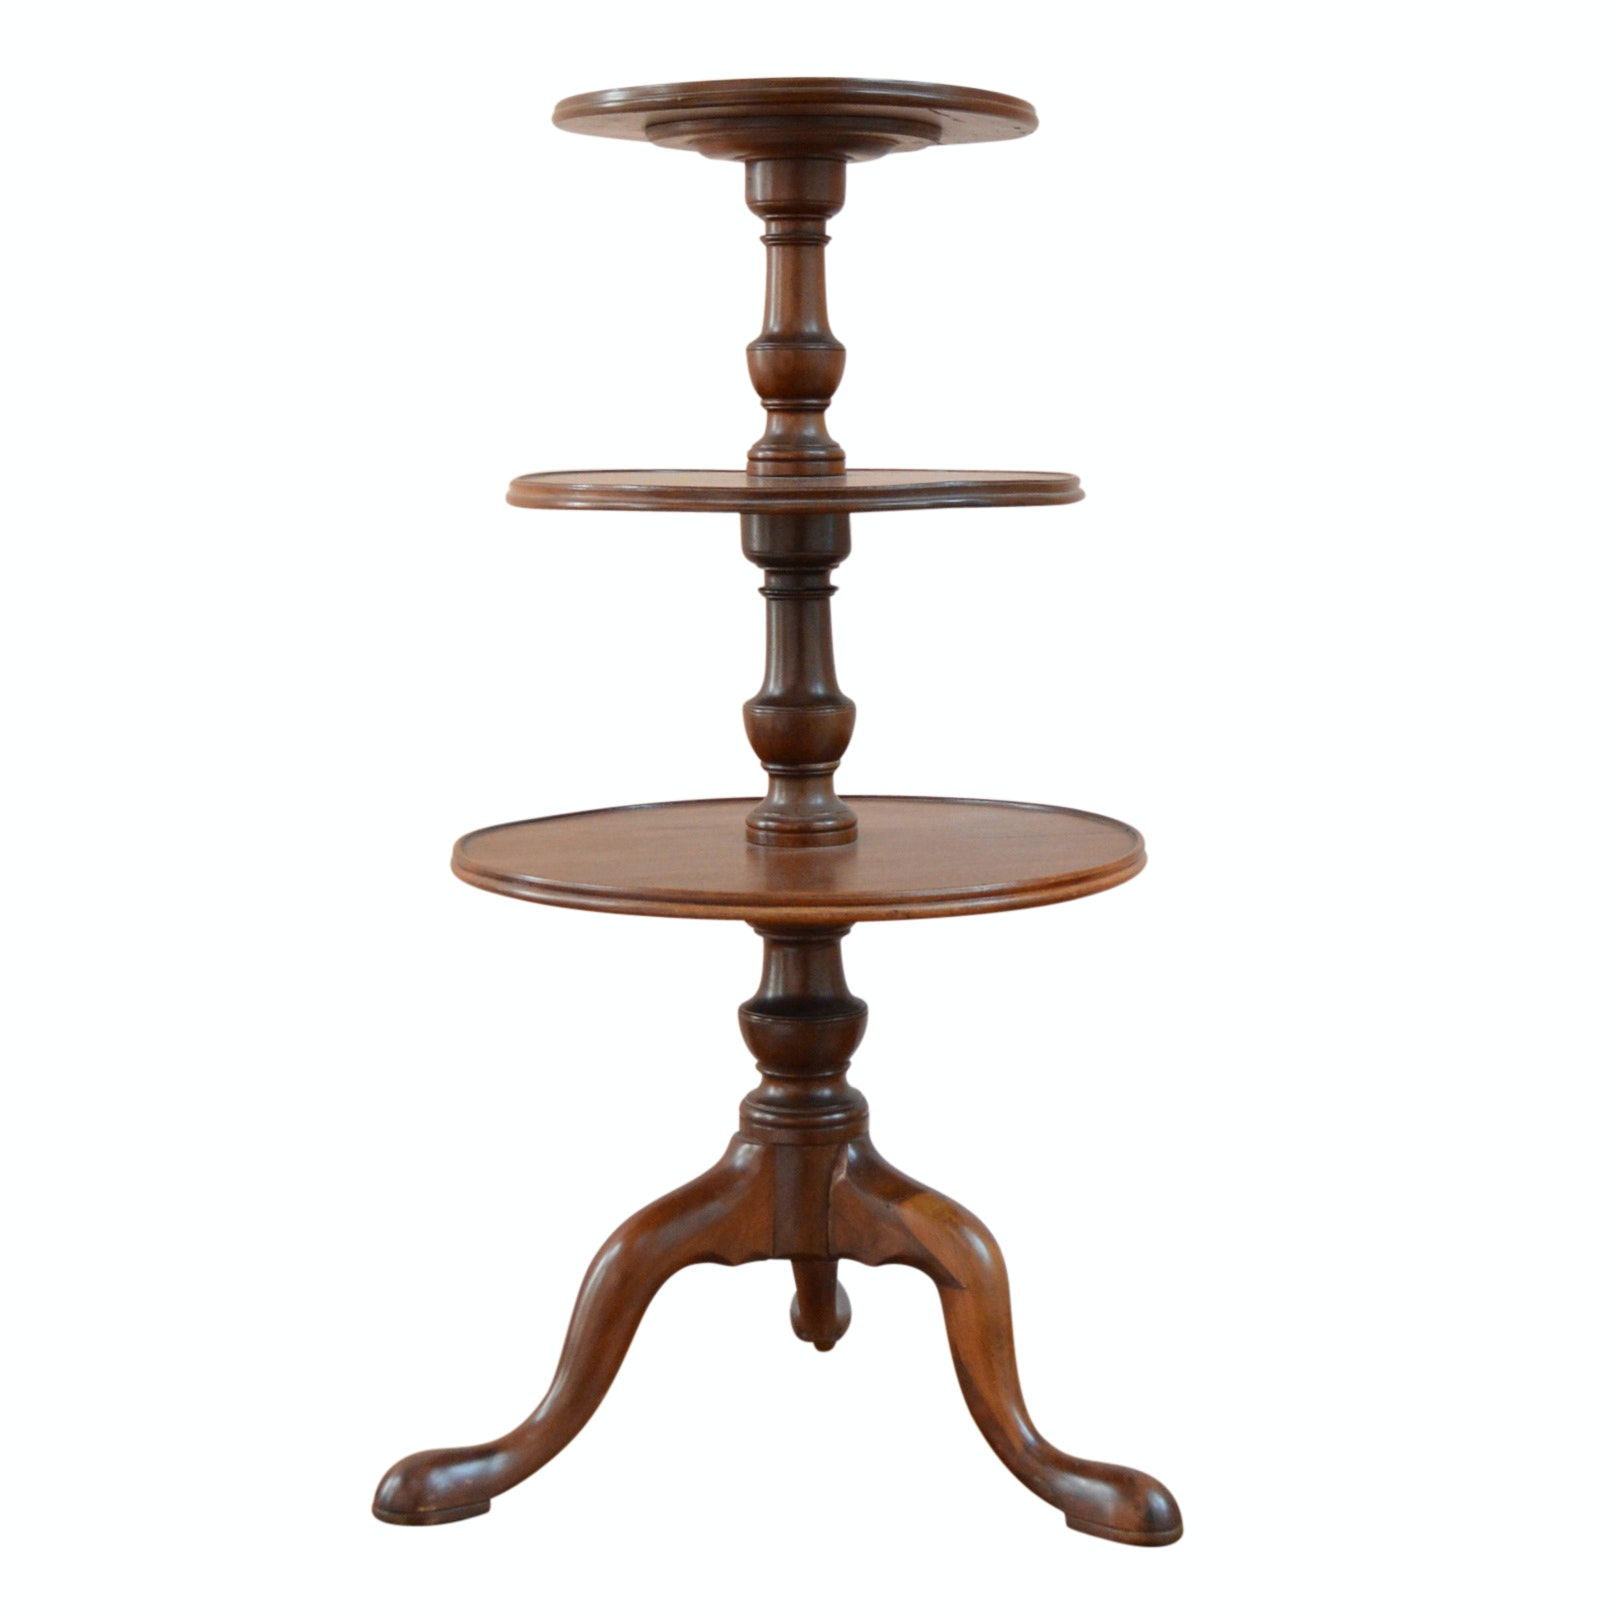 Vintage Queen Anne Style Mahogany Tiered Table